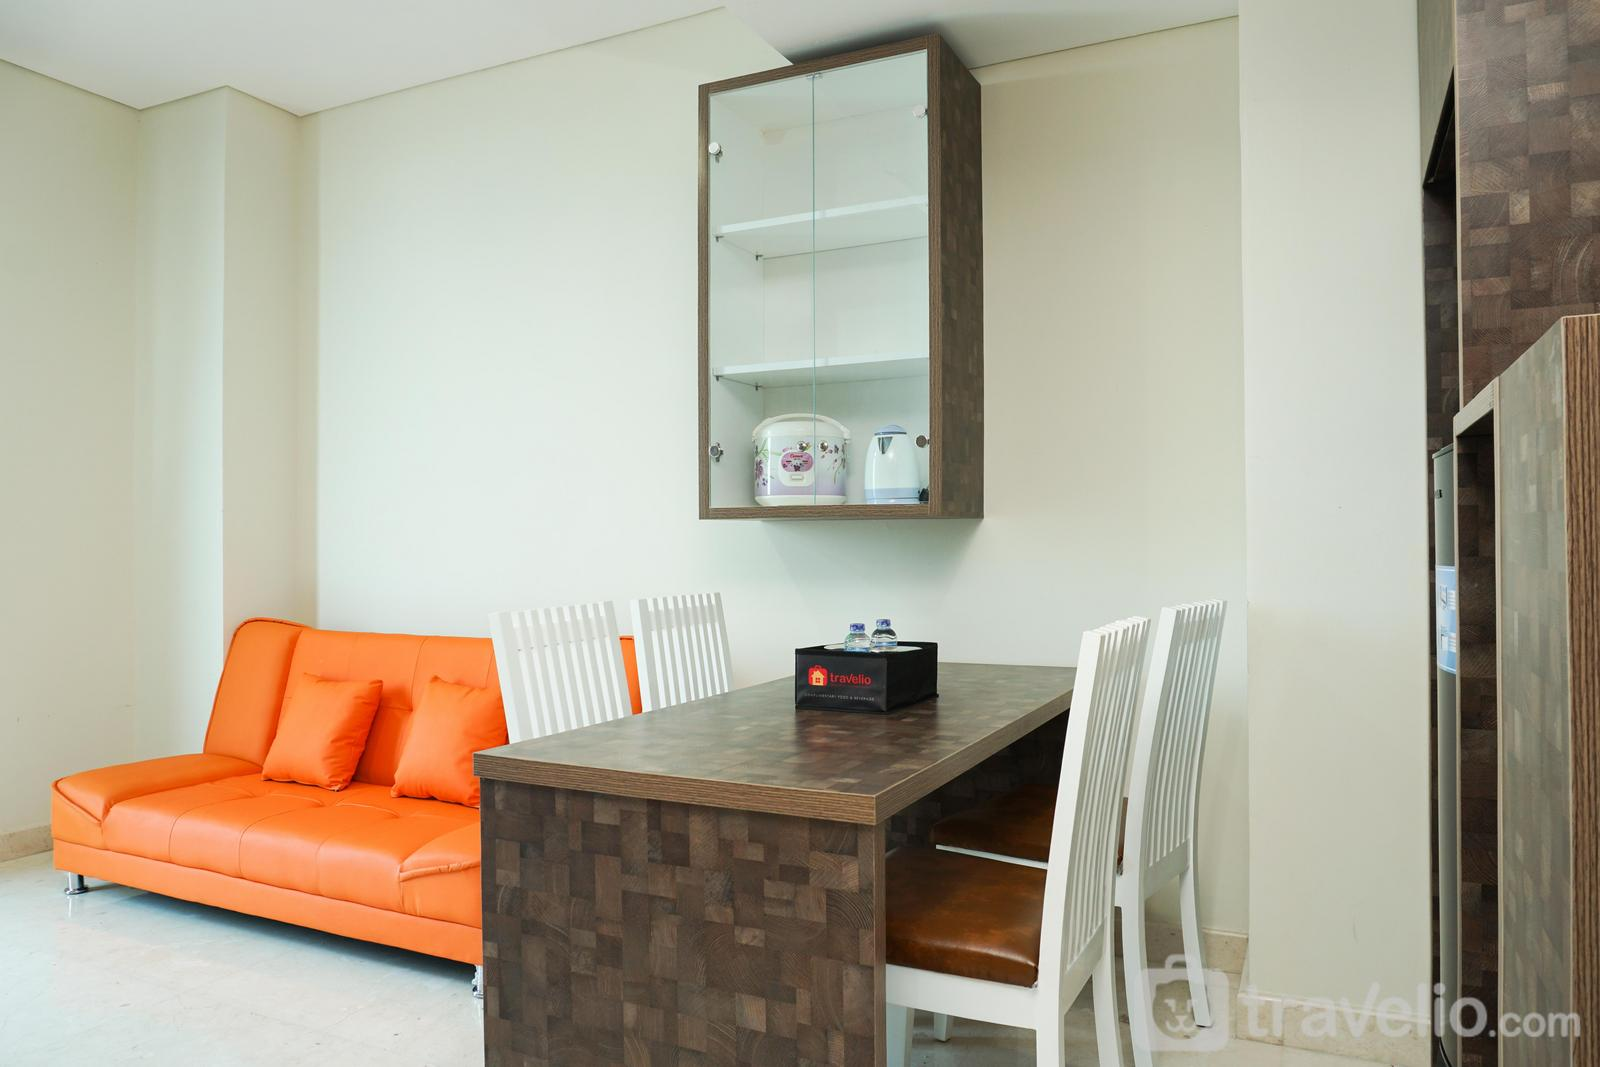 Puri Orchard Apartment - New Furnished 2BR Puri Orchard Apartment By Travelio